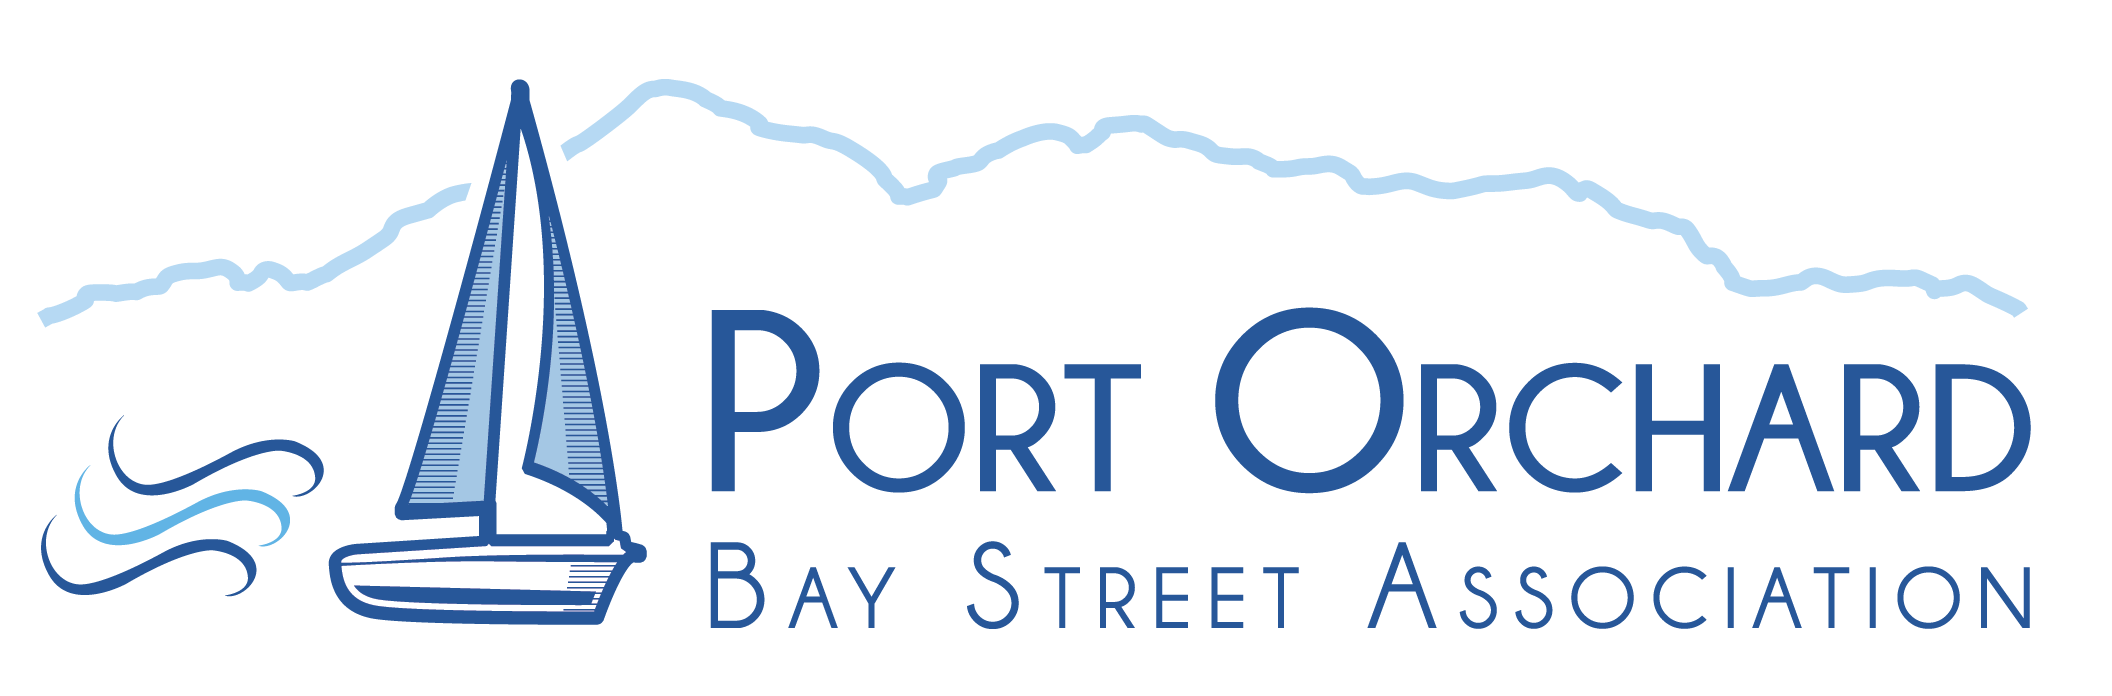 Port Orchard Bay Street Association Logo